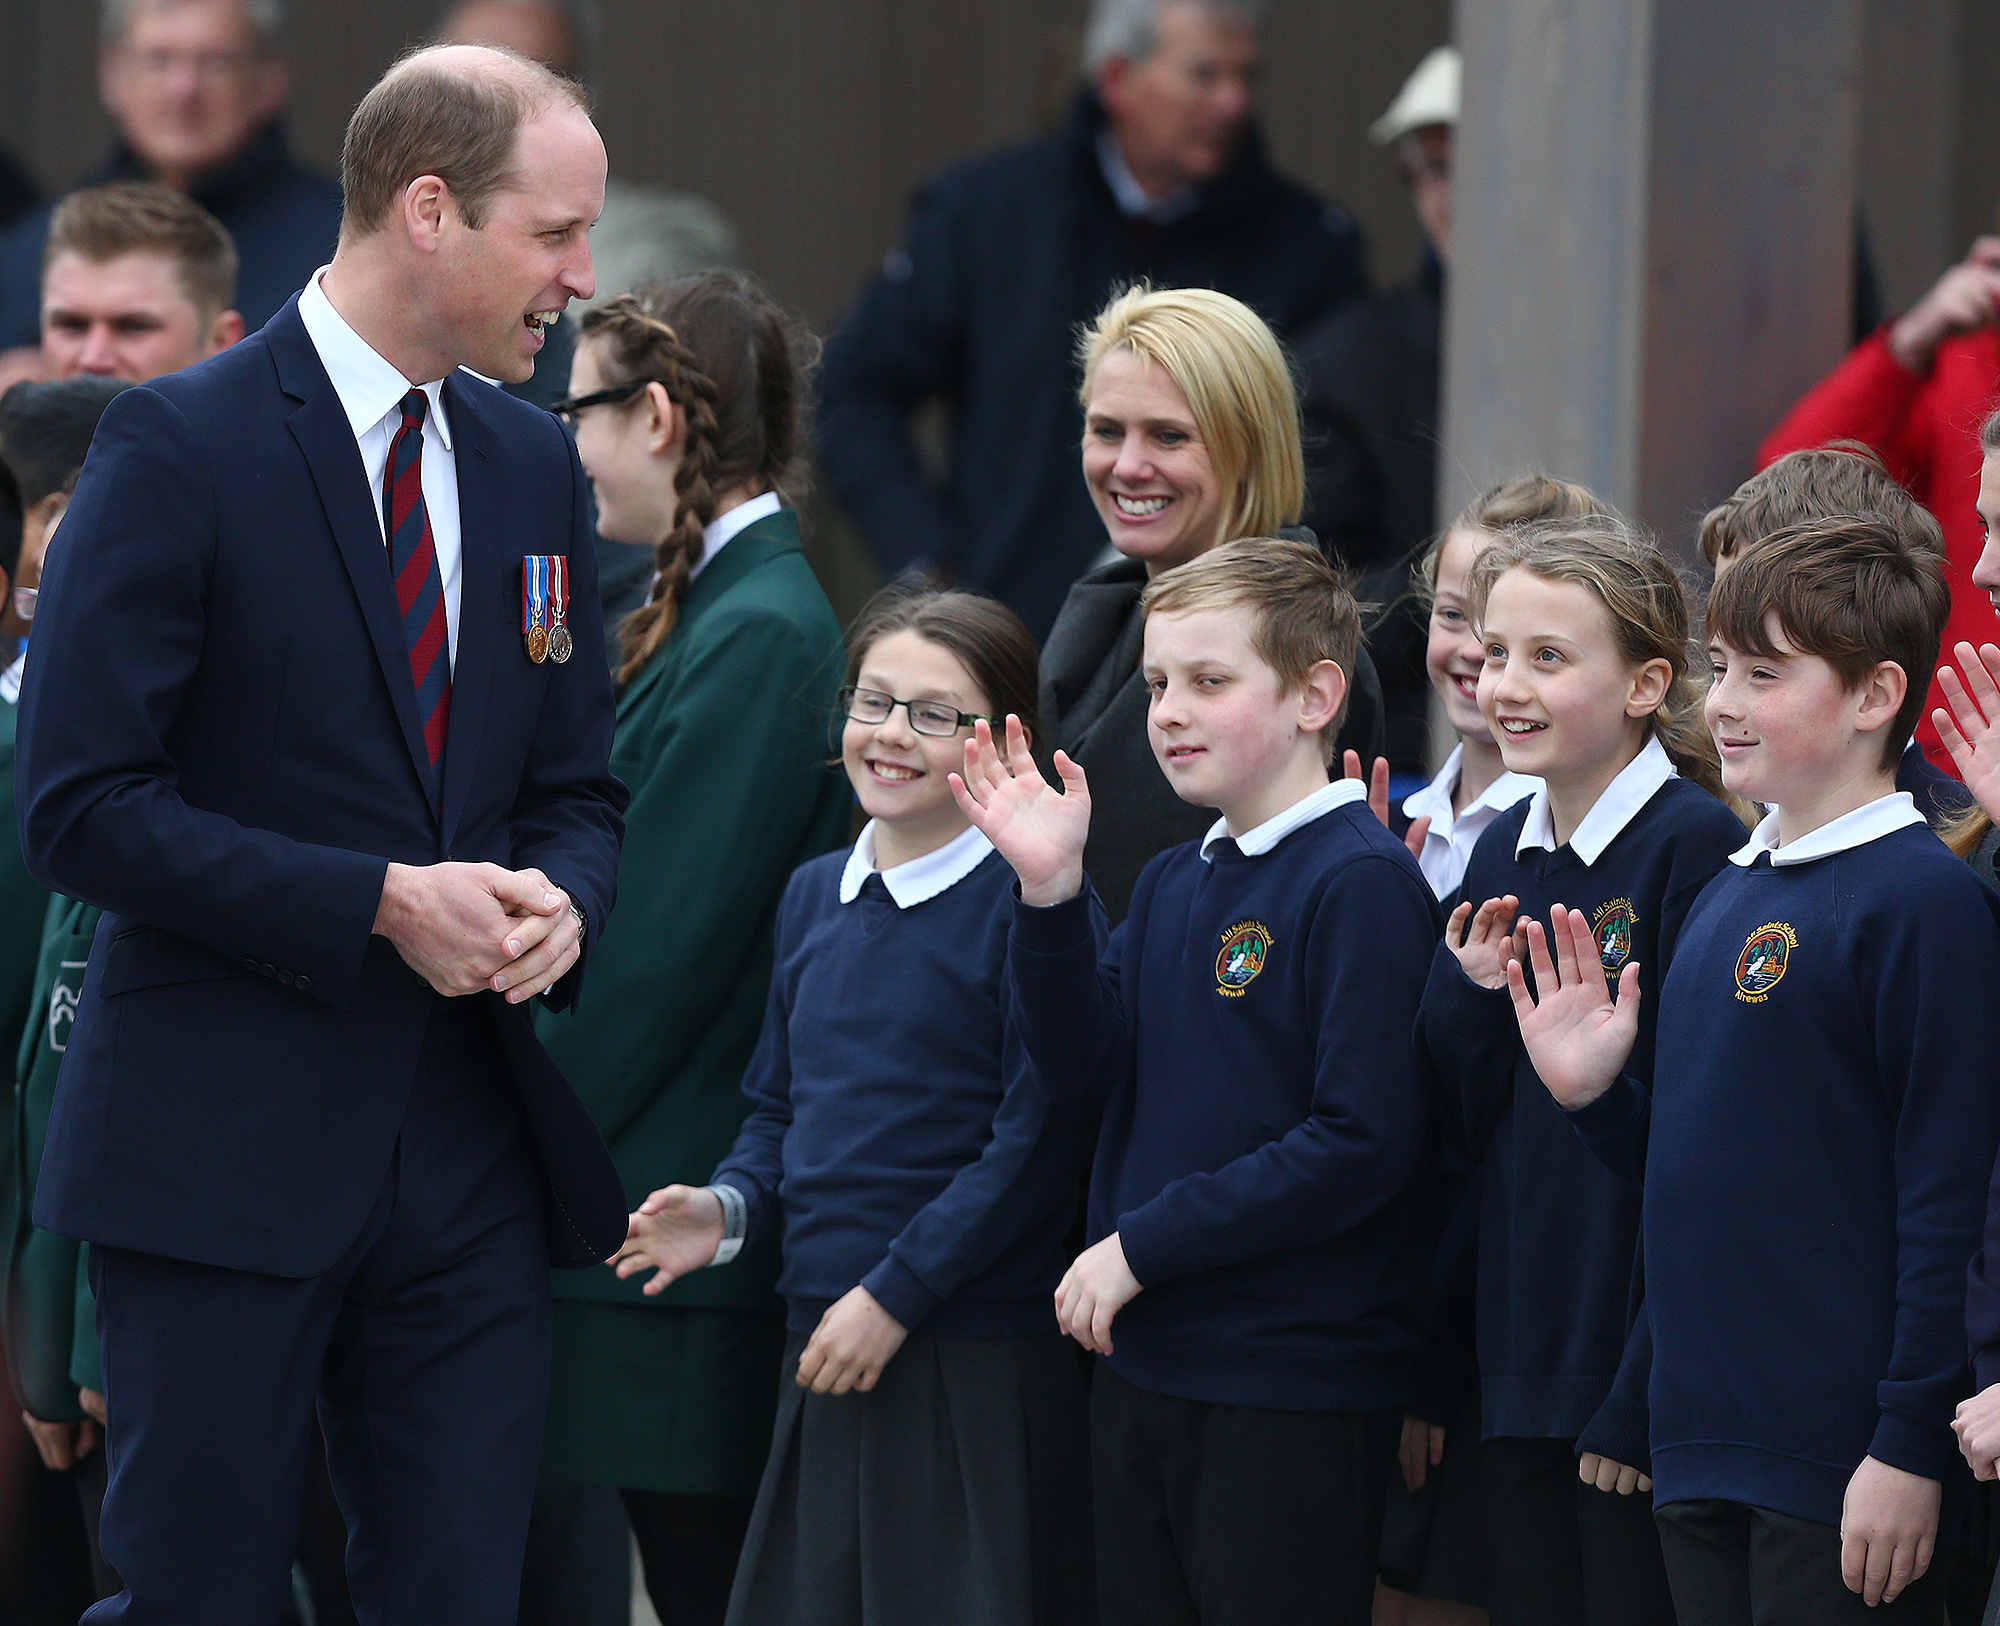 The Duke Of Cambridge Opens New Remembrance Centre At The National Memorial Arboretum